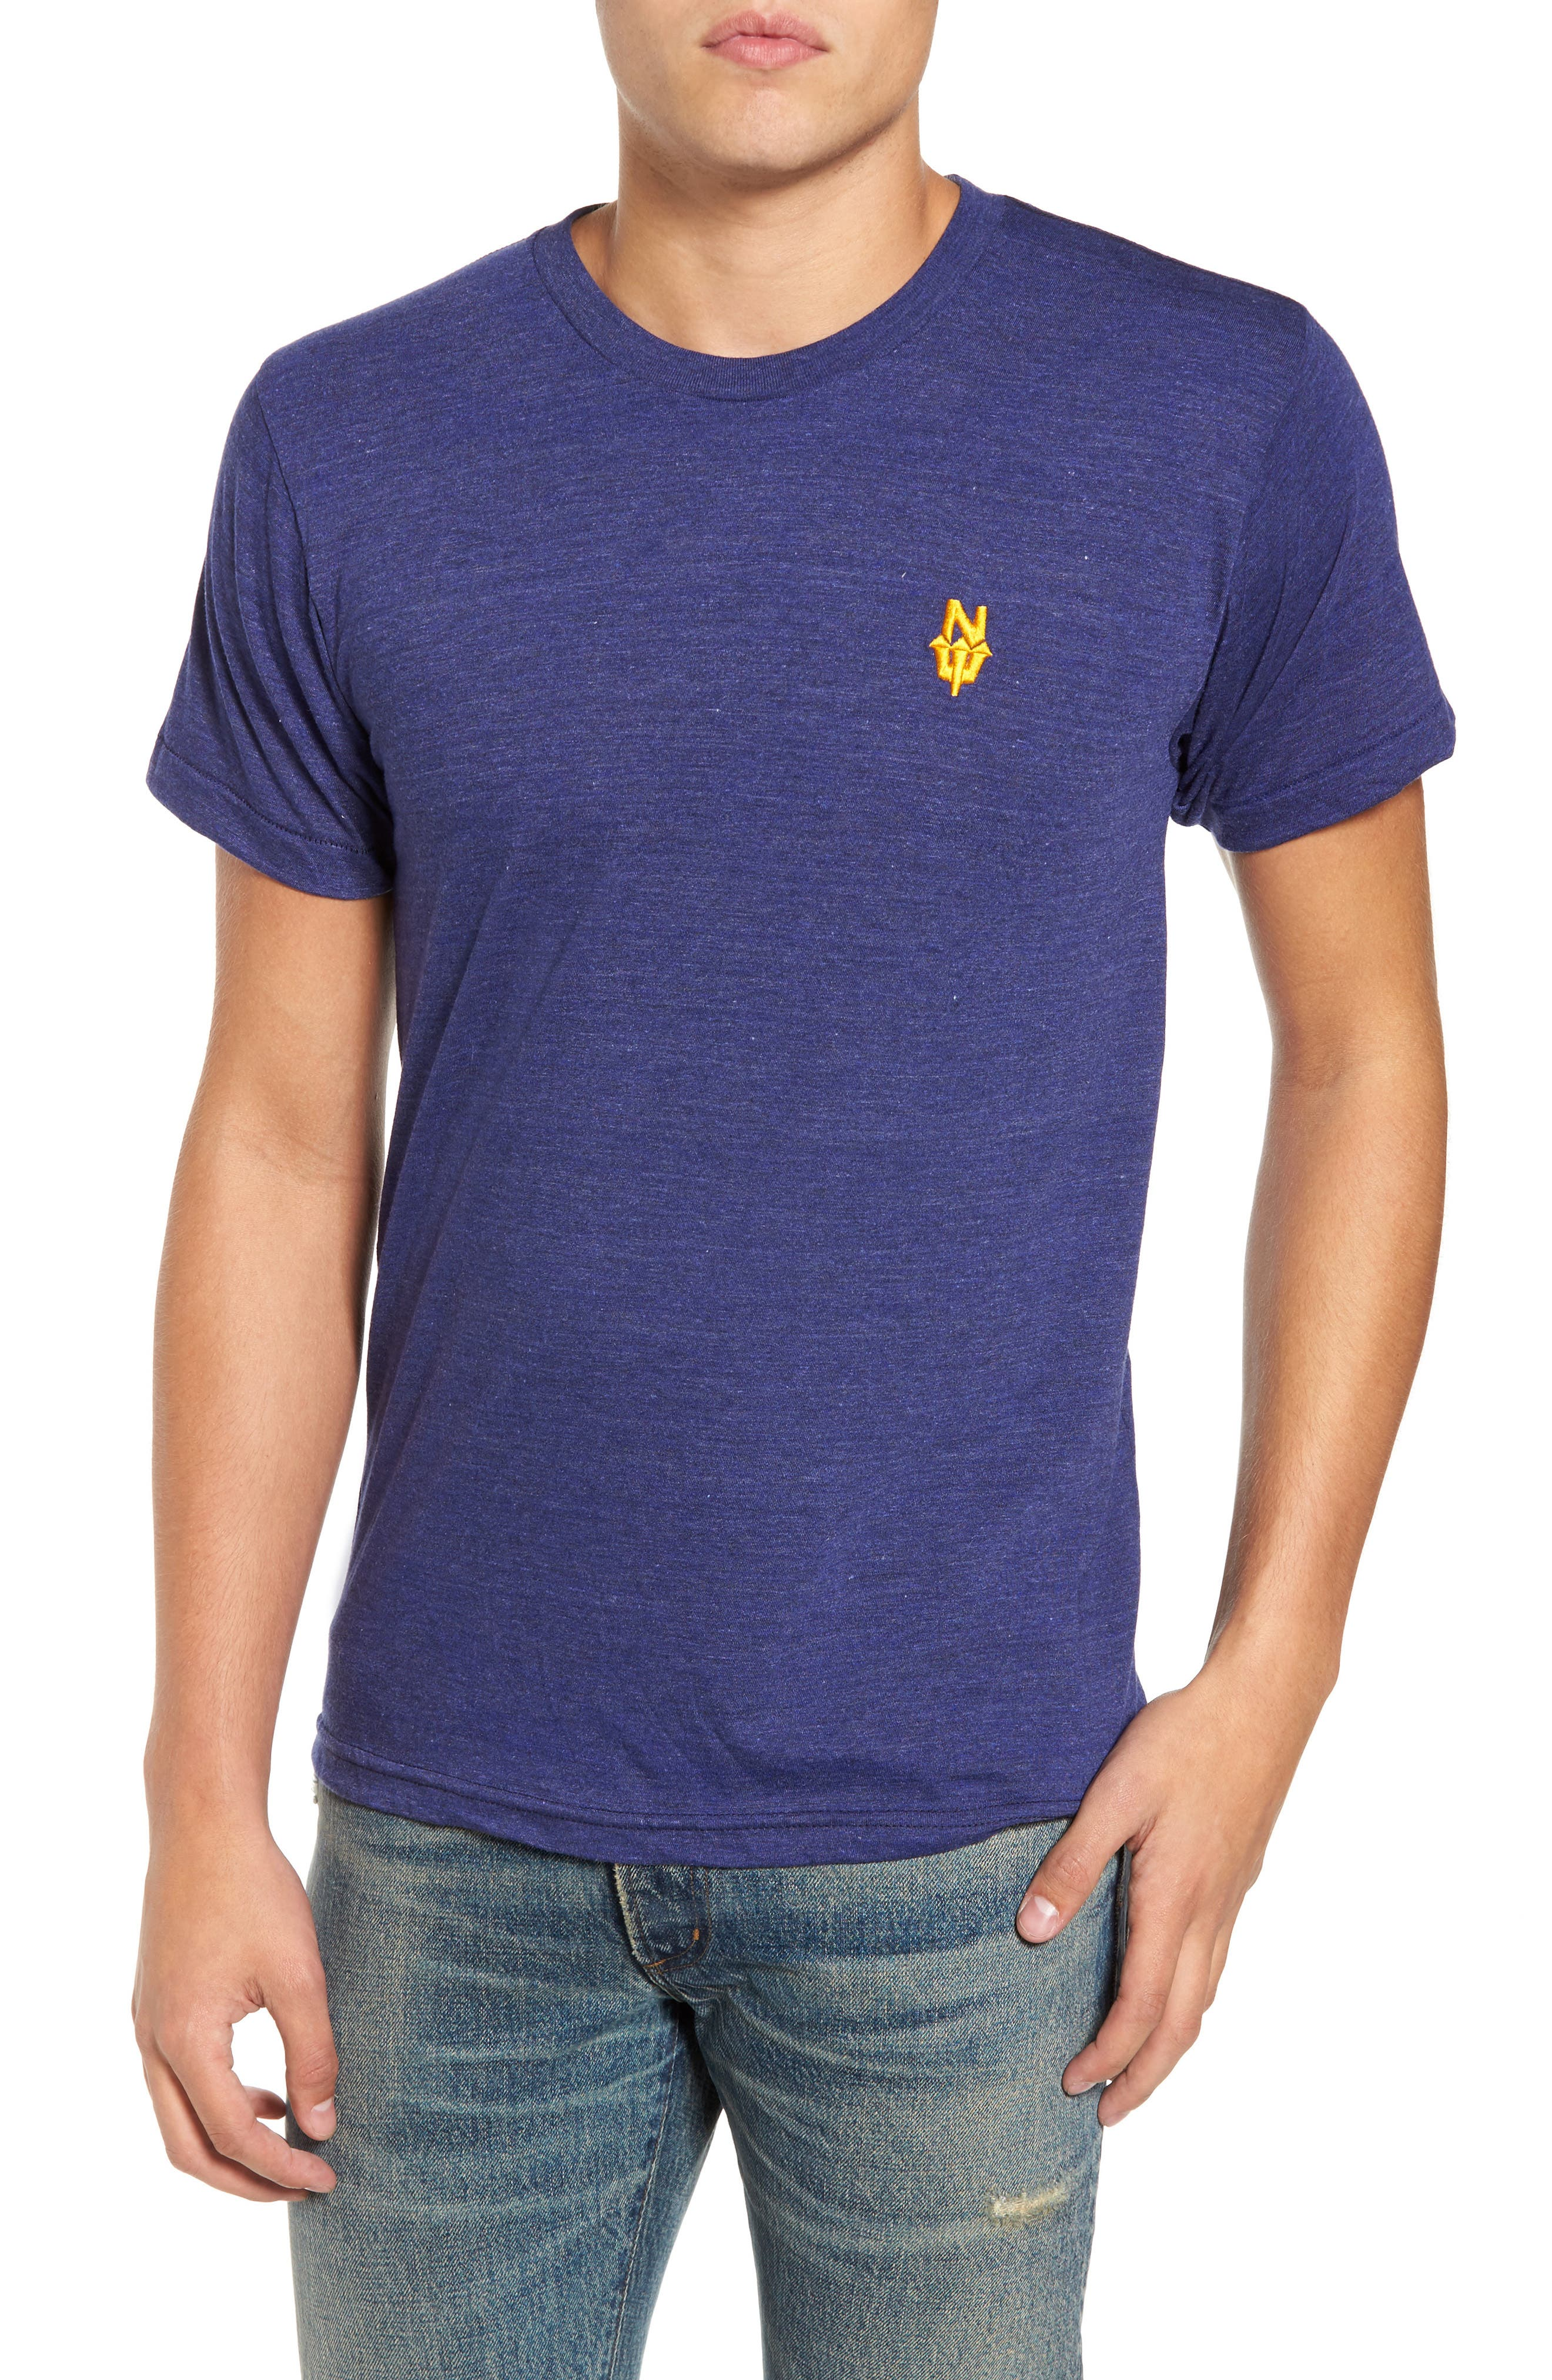 NW Trident Embroidered T-Shirt,                             Main thumbnail 3, color,